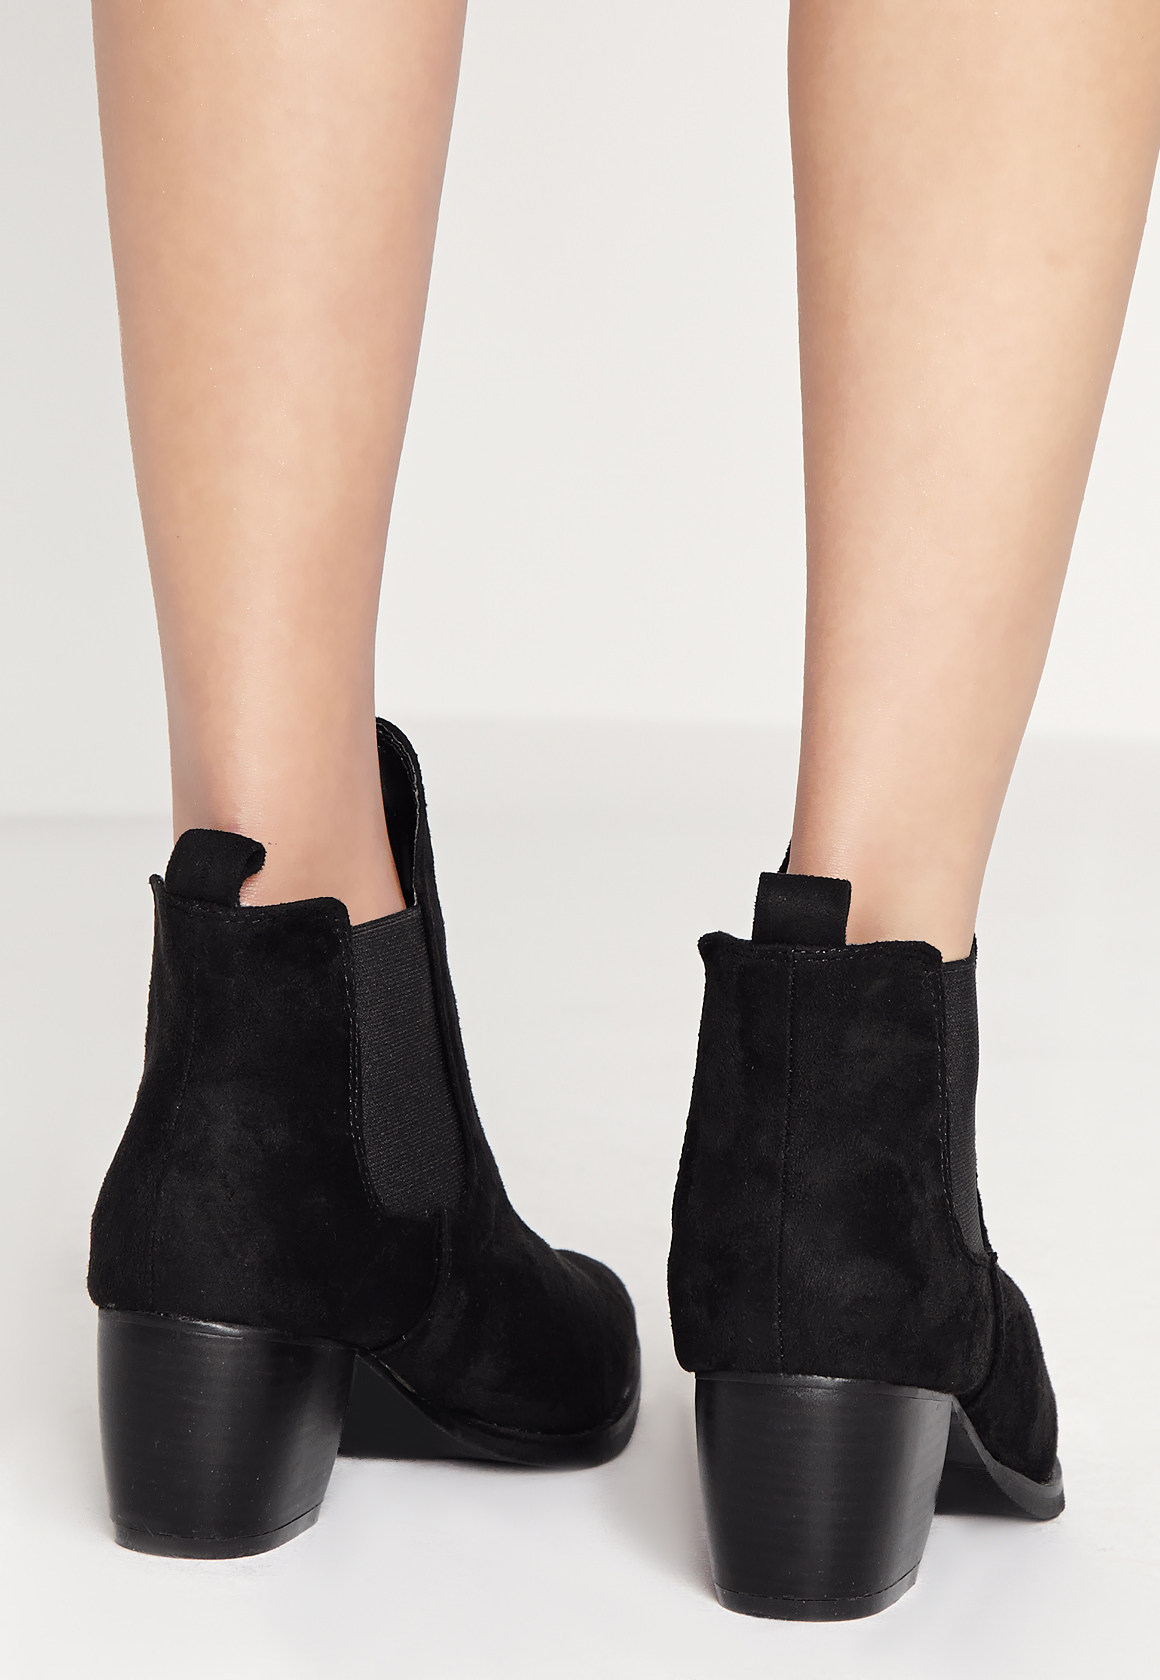 b6514cffdc5f Lyst - Missguided Low Heel Chelsea Boots Black in Black